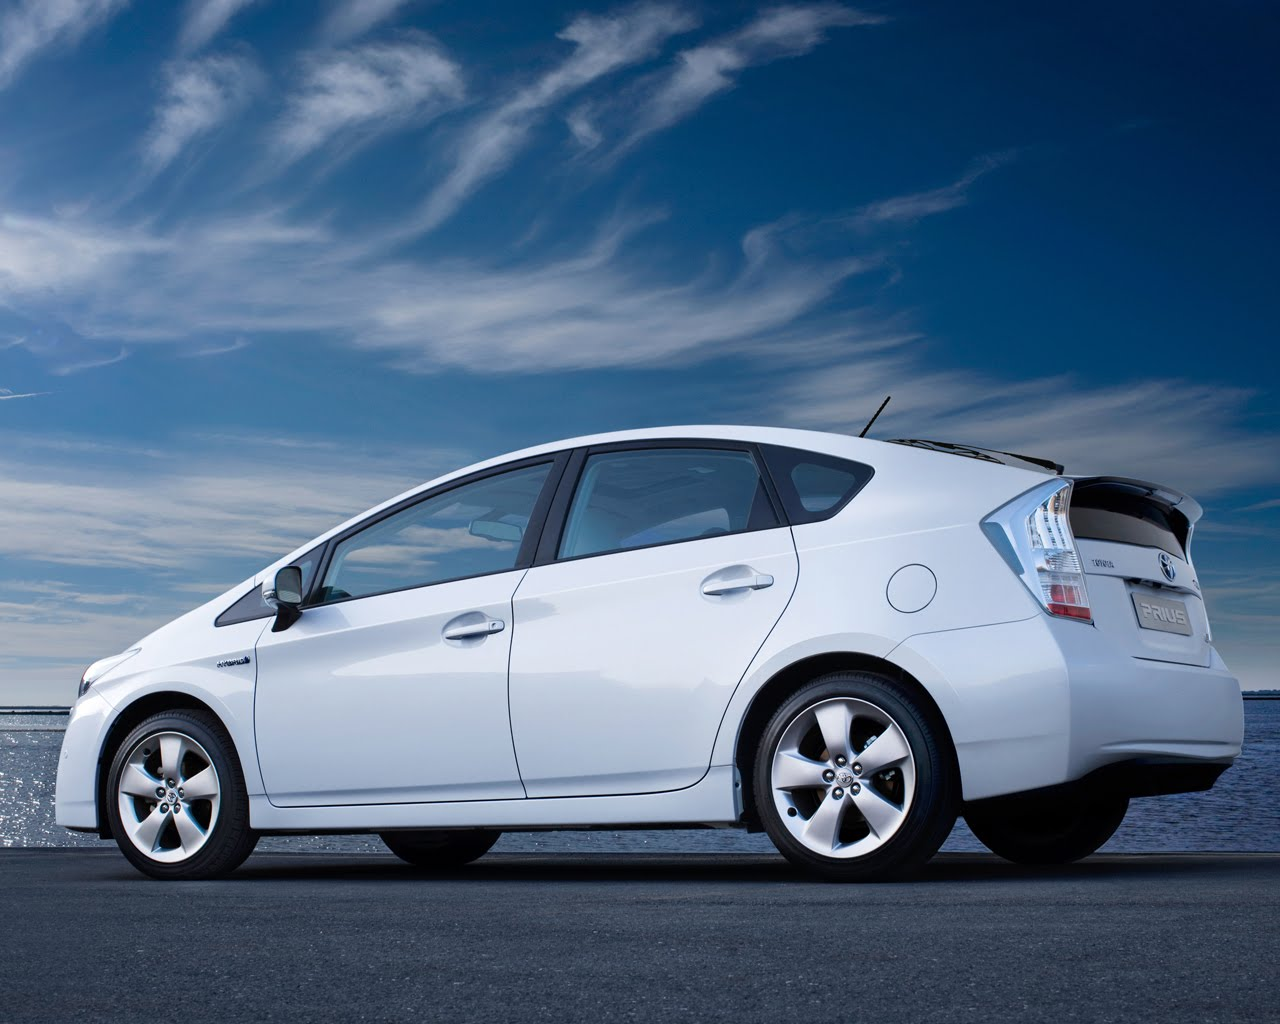 The amazingly competent and reliable Toyota Prius